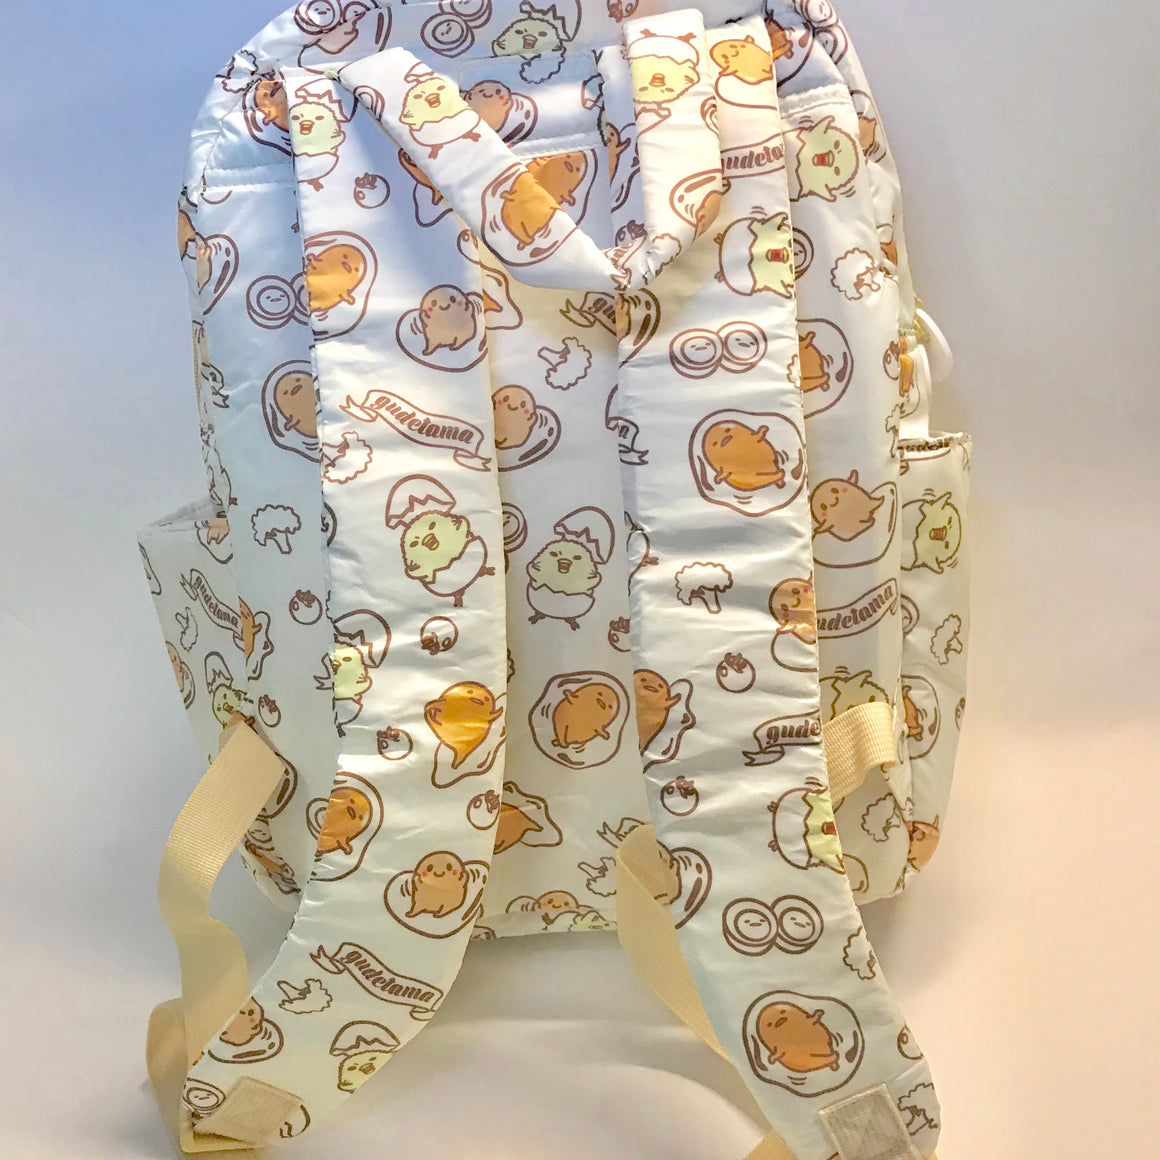 Gudetama and Friends Backpack  by Sanrio with carry handles